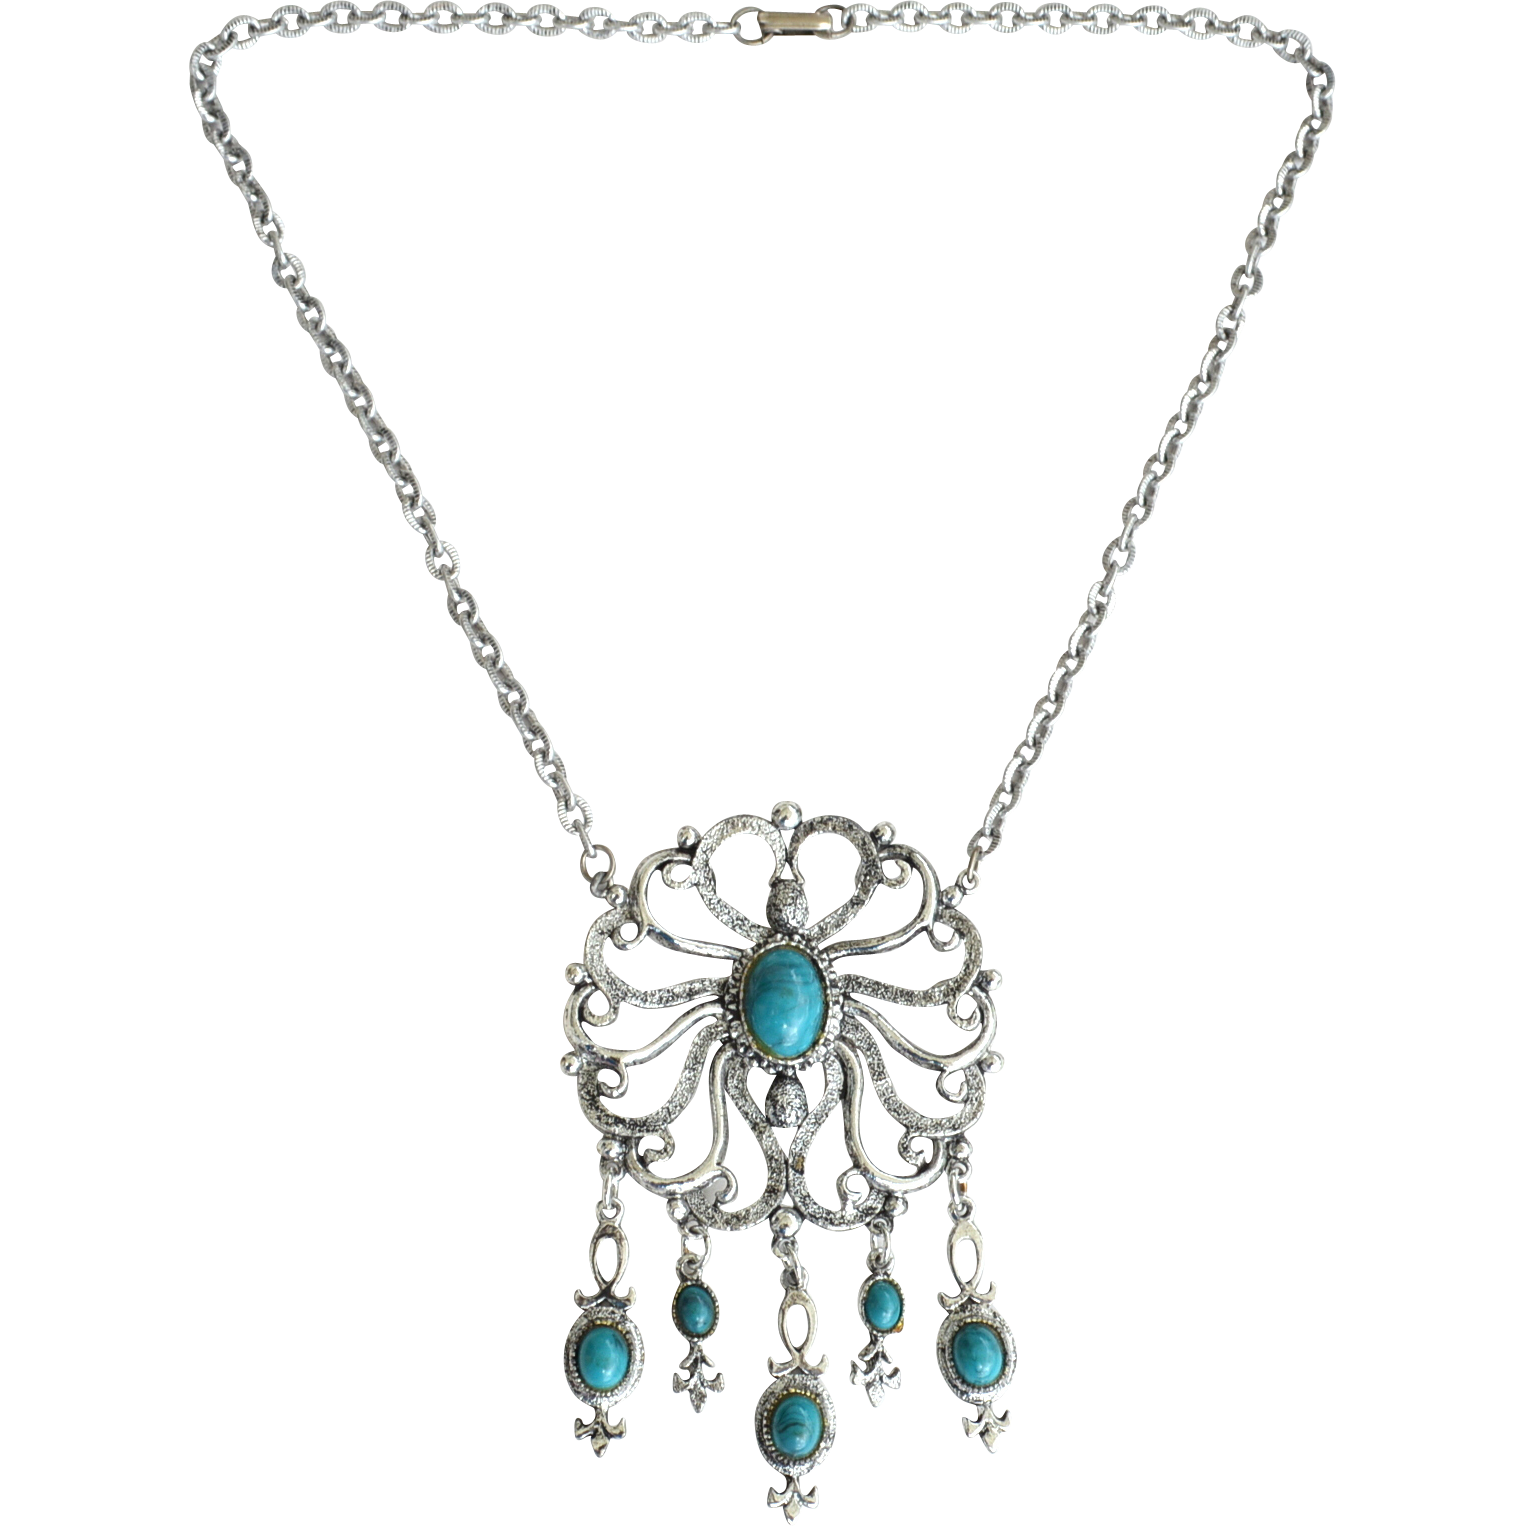 Vintage Silver Tone Metal and Faux Turquoise Pendant Dangling Necklace